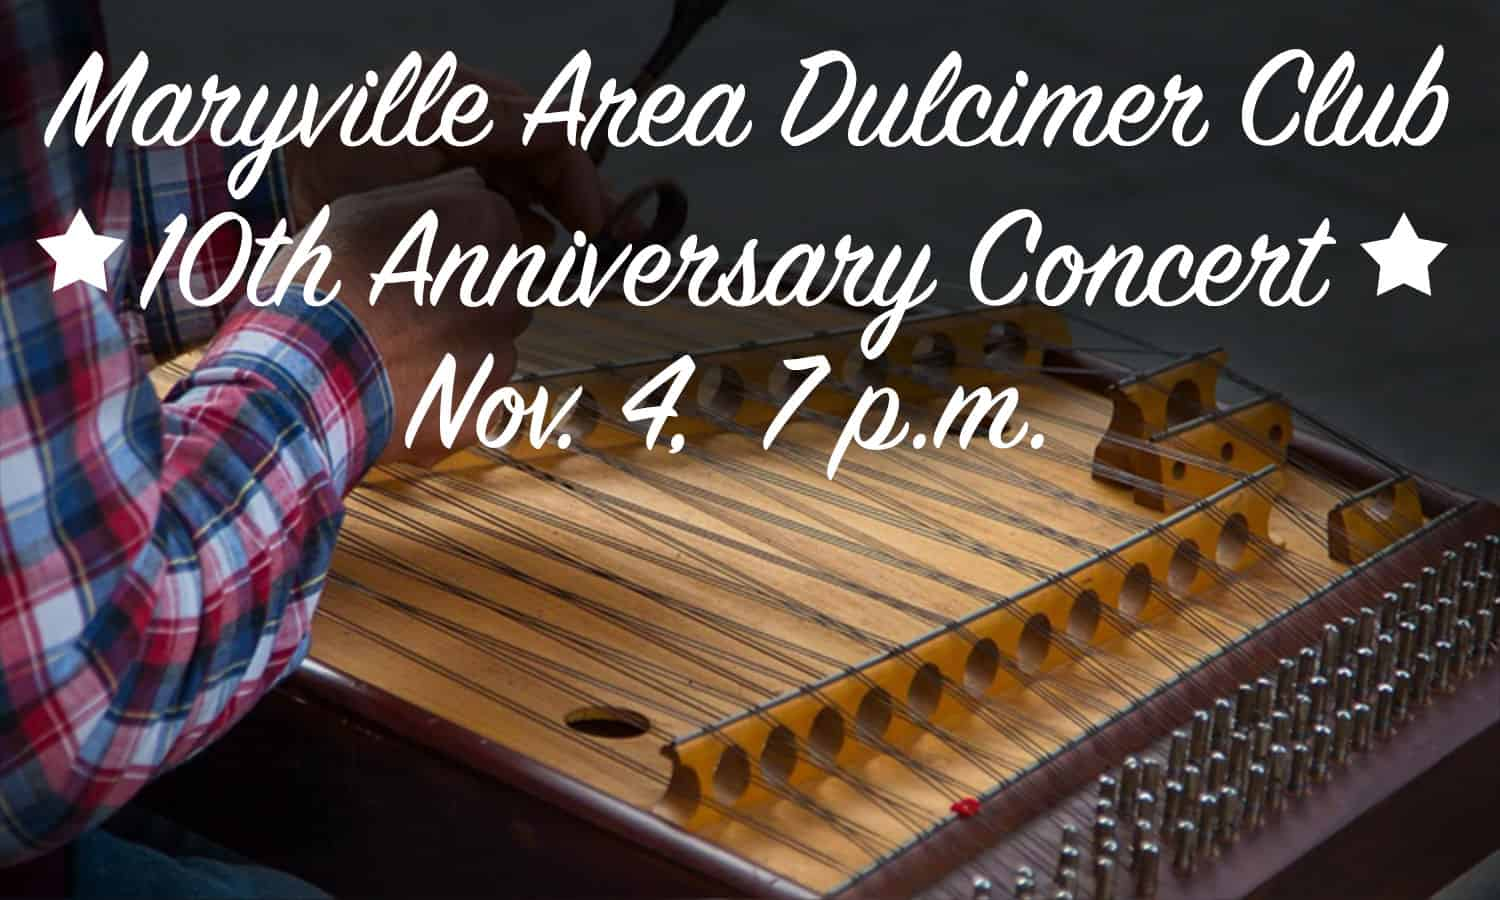 Dulcimer Club 10th Anniversary Concert